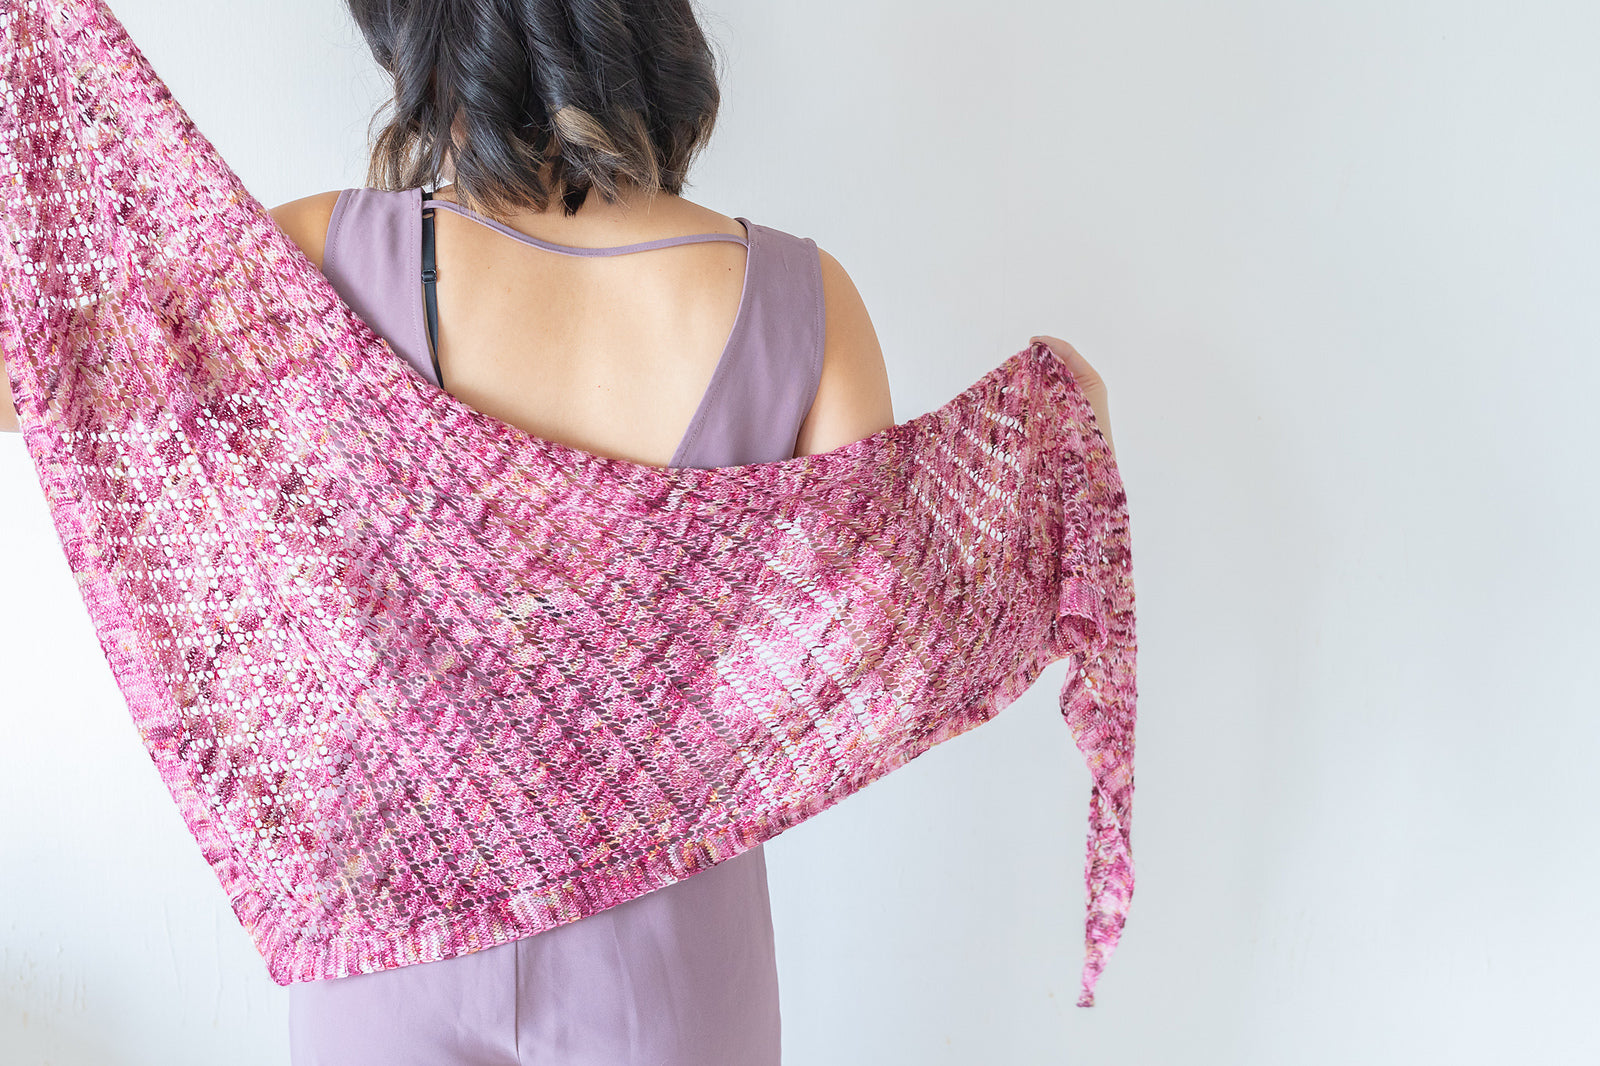 Person wearing a sleeveless purple dress with their back to the camera holding a pink, triangular lace shawl.